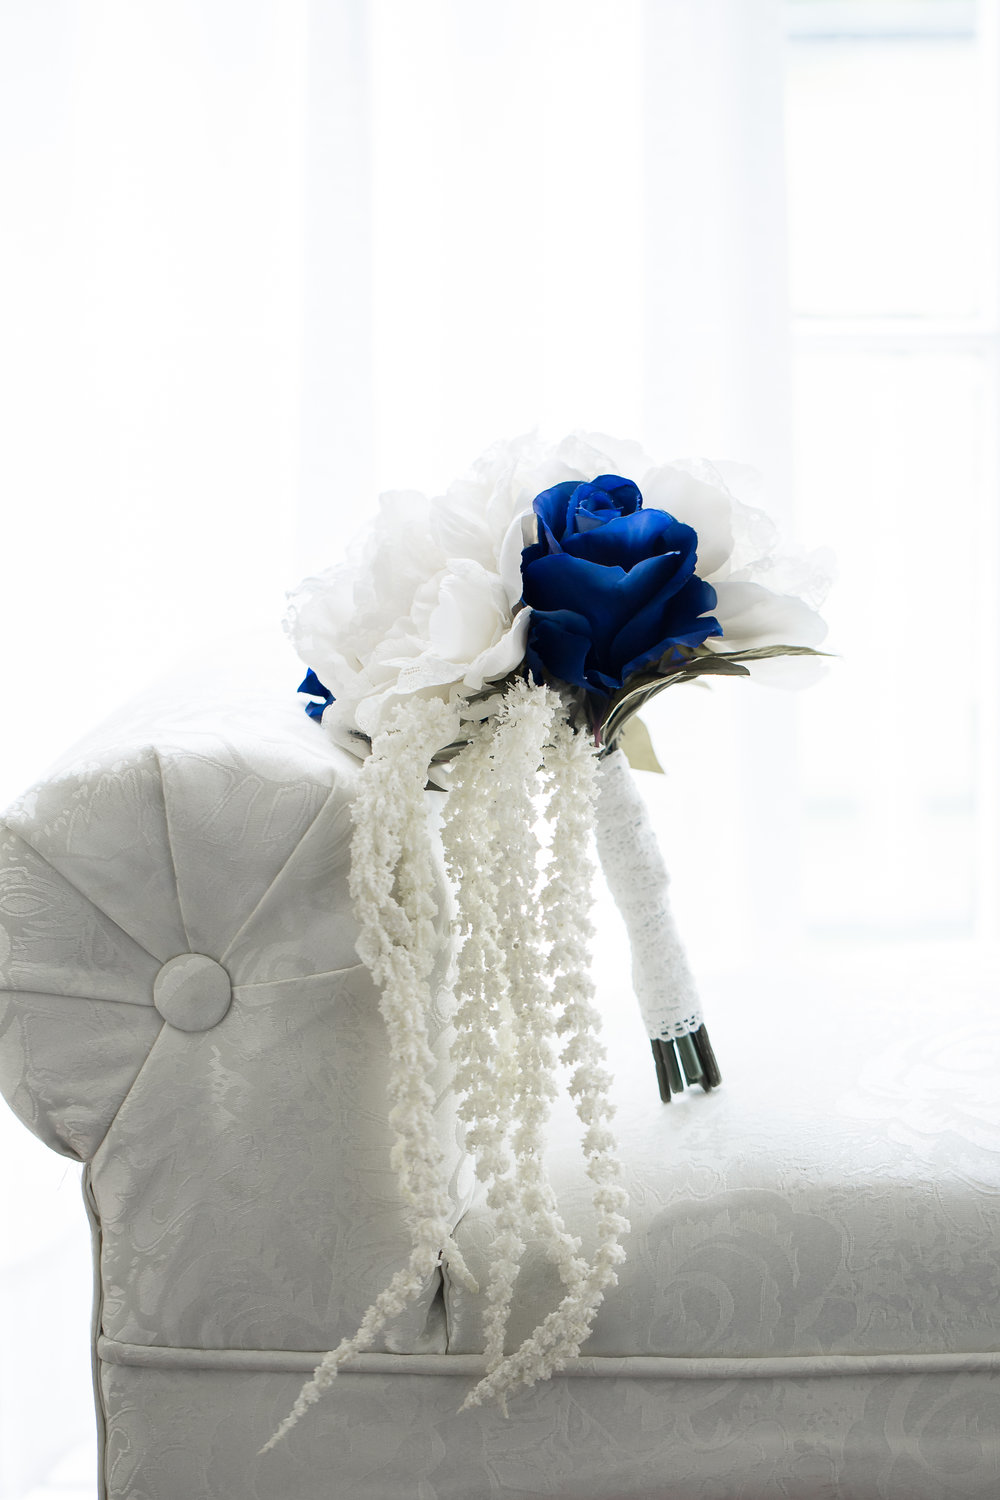 Gandjos_Tinko_BackSeatPhotography_backseatphoto8.JPG